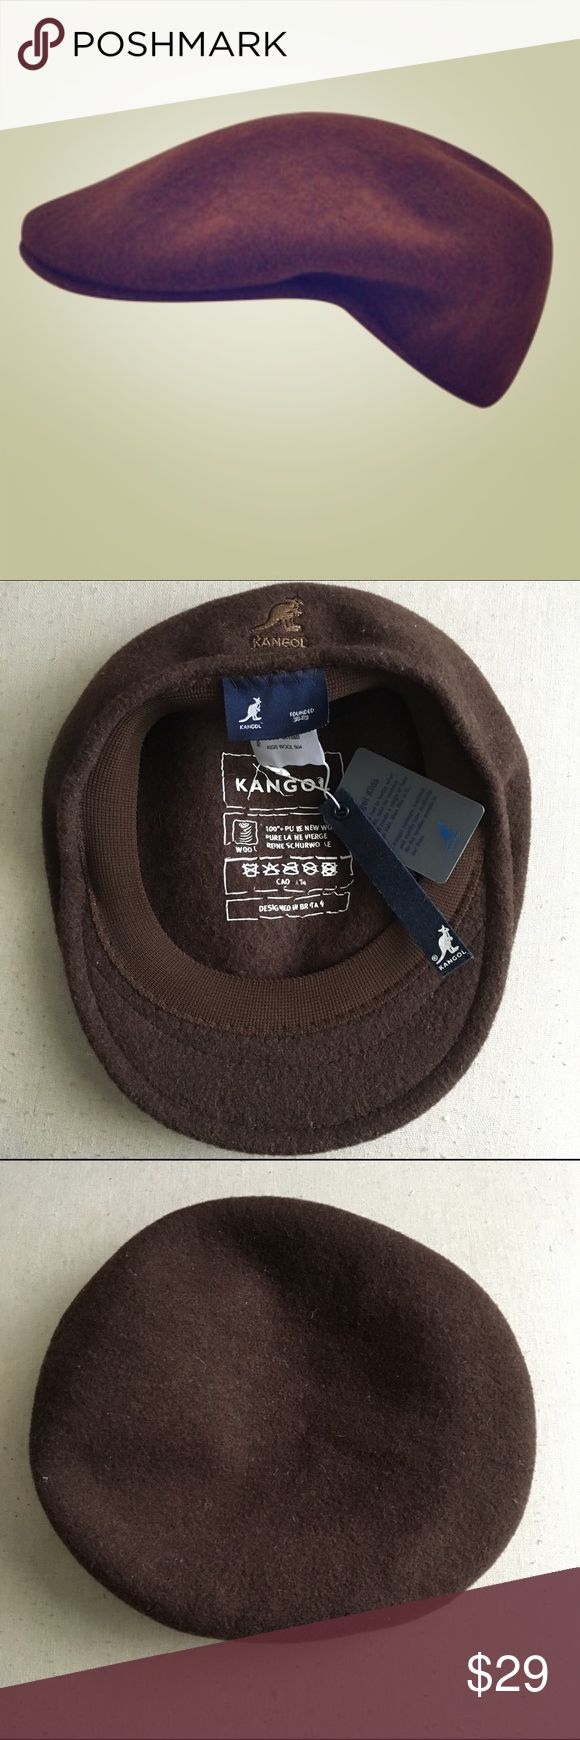 Dark Brown Wool Kangol Cap-NWT New with tags.  Dark brown 100% wool Kangol classic ivy cap or the 504.  Wool hats are warm, breathable, and durable. Has an elasticized cotton sweatband for a more comfy fit.  Has the Kangol kangaroo logo on the back. Size Small says it fits ages 2-4. Super cute Kangol Accessories Hats